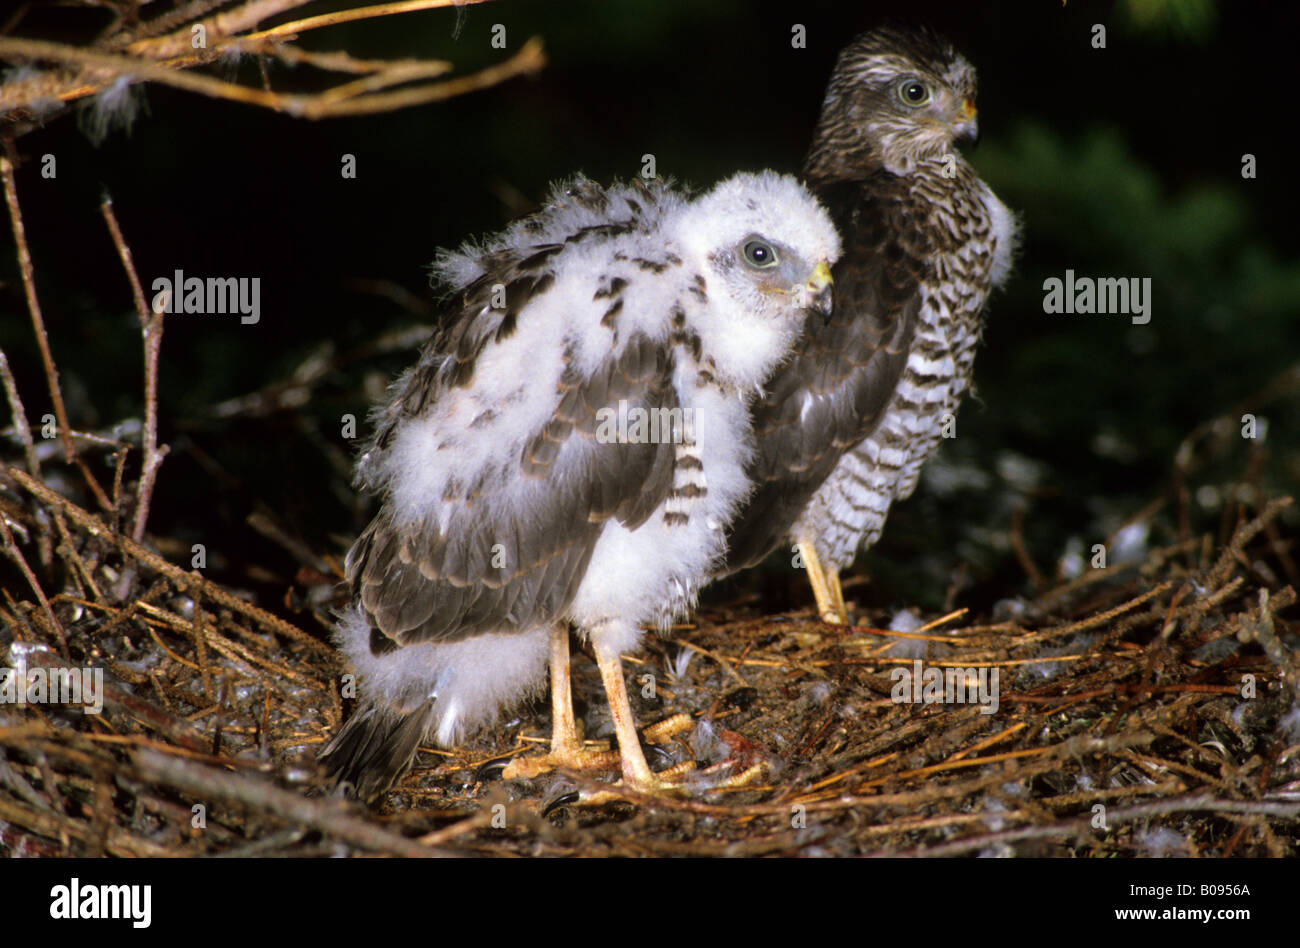 Eurasian Sparrowhawk (Accipiter nisus), Accipitridae family, nearly fledged young bird perching on its nest - Stock Image